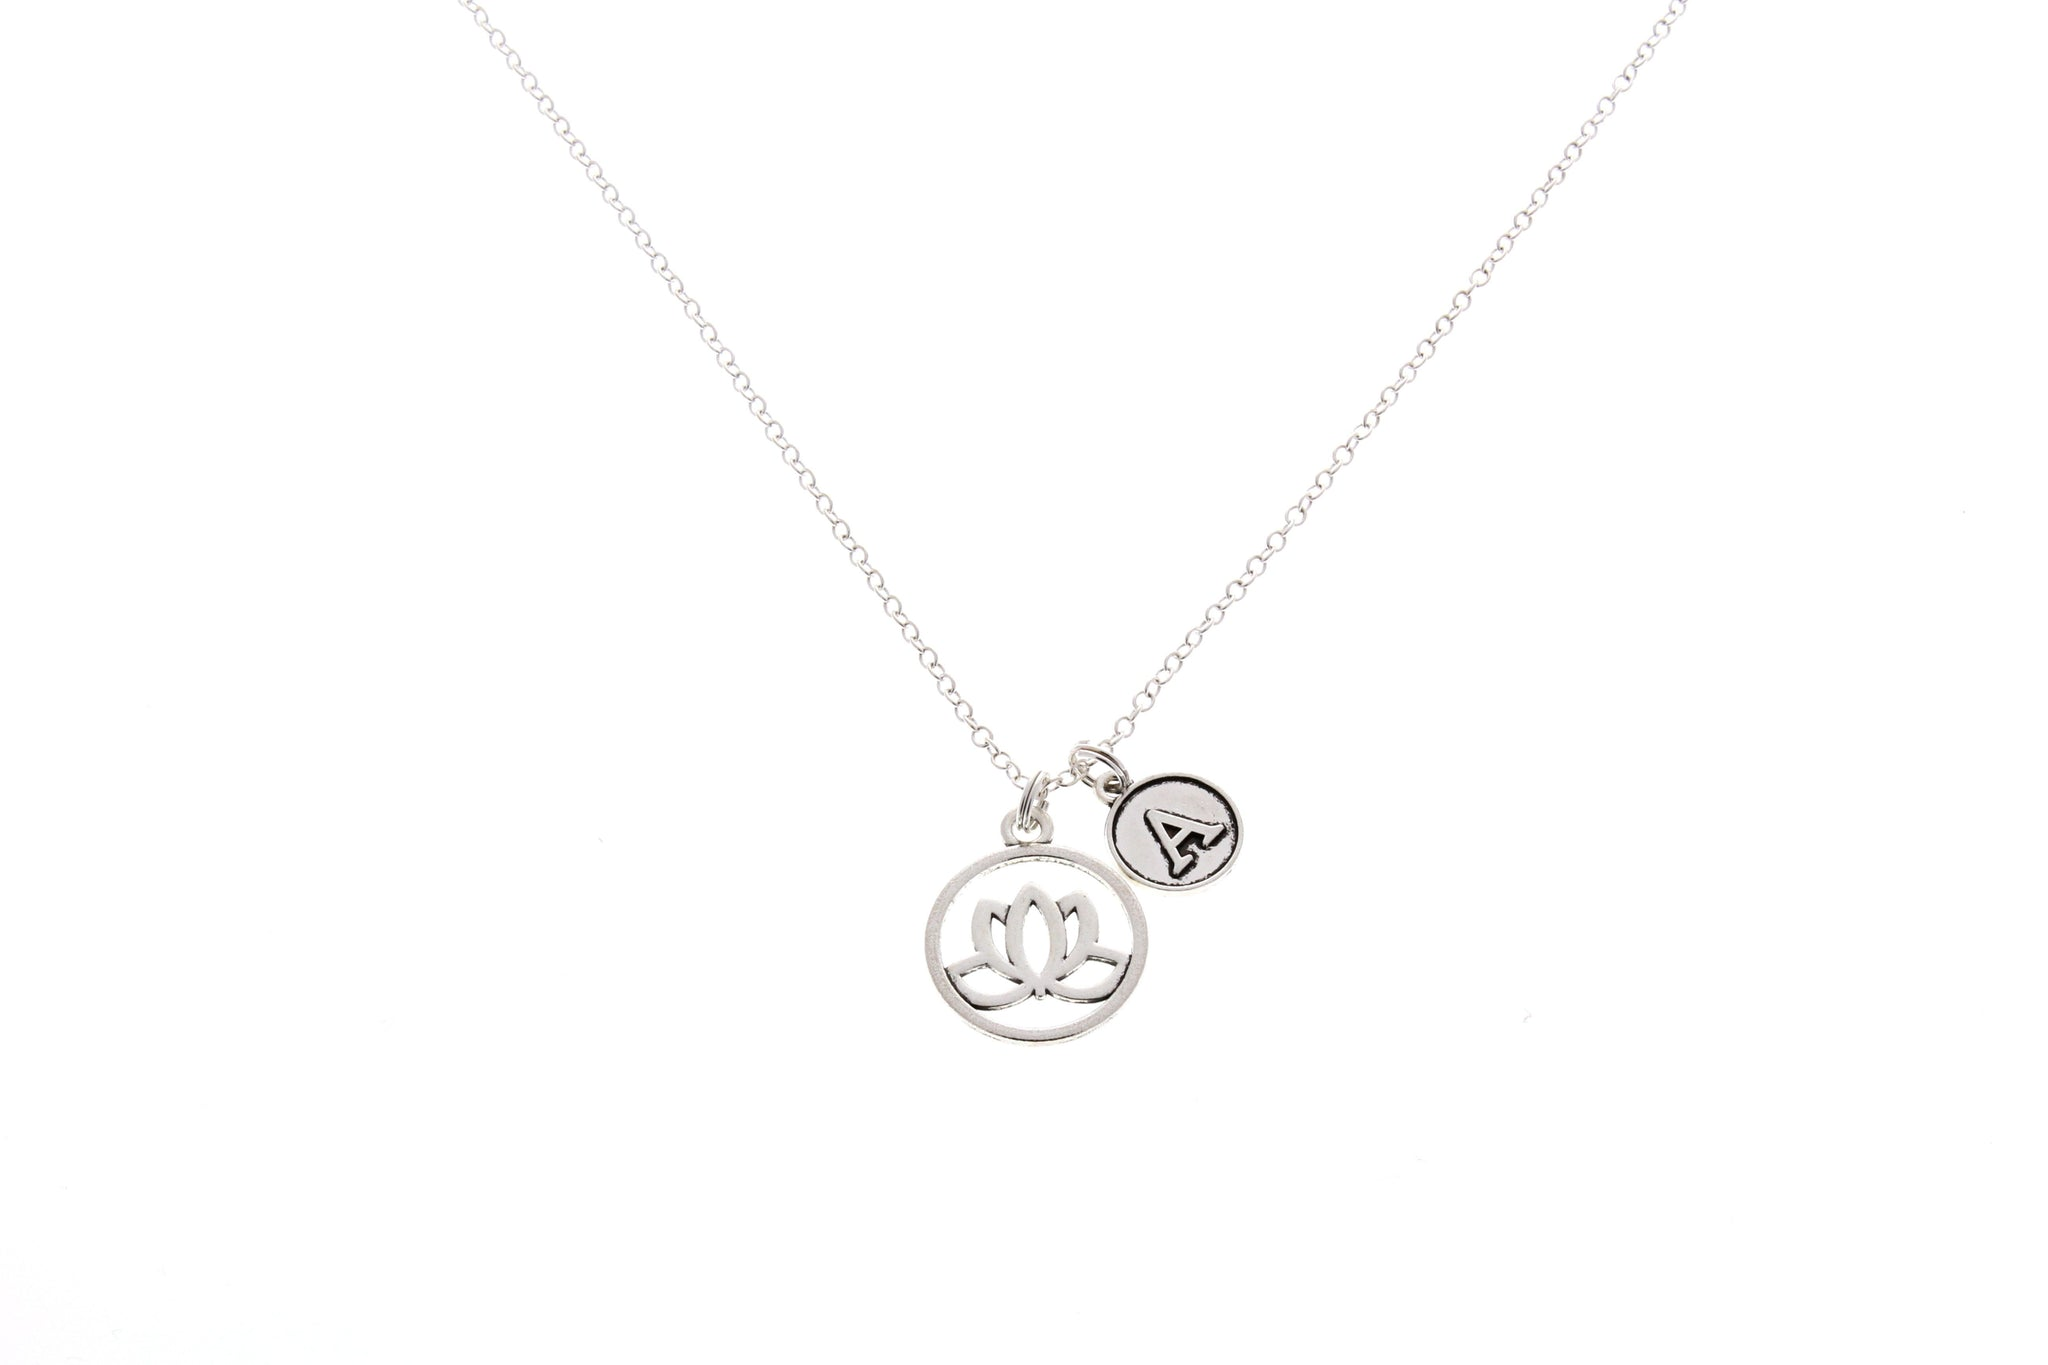 Lotus Flower Necklace with Initial Charm